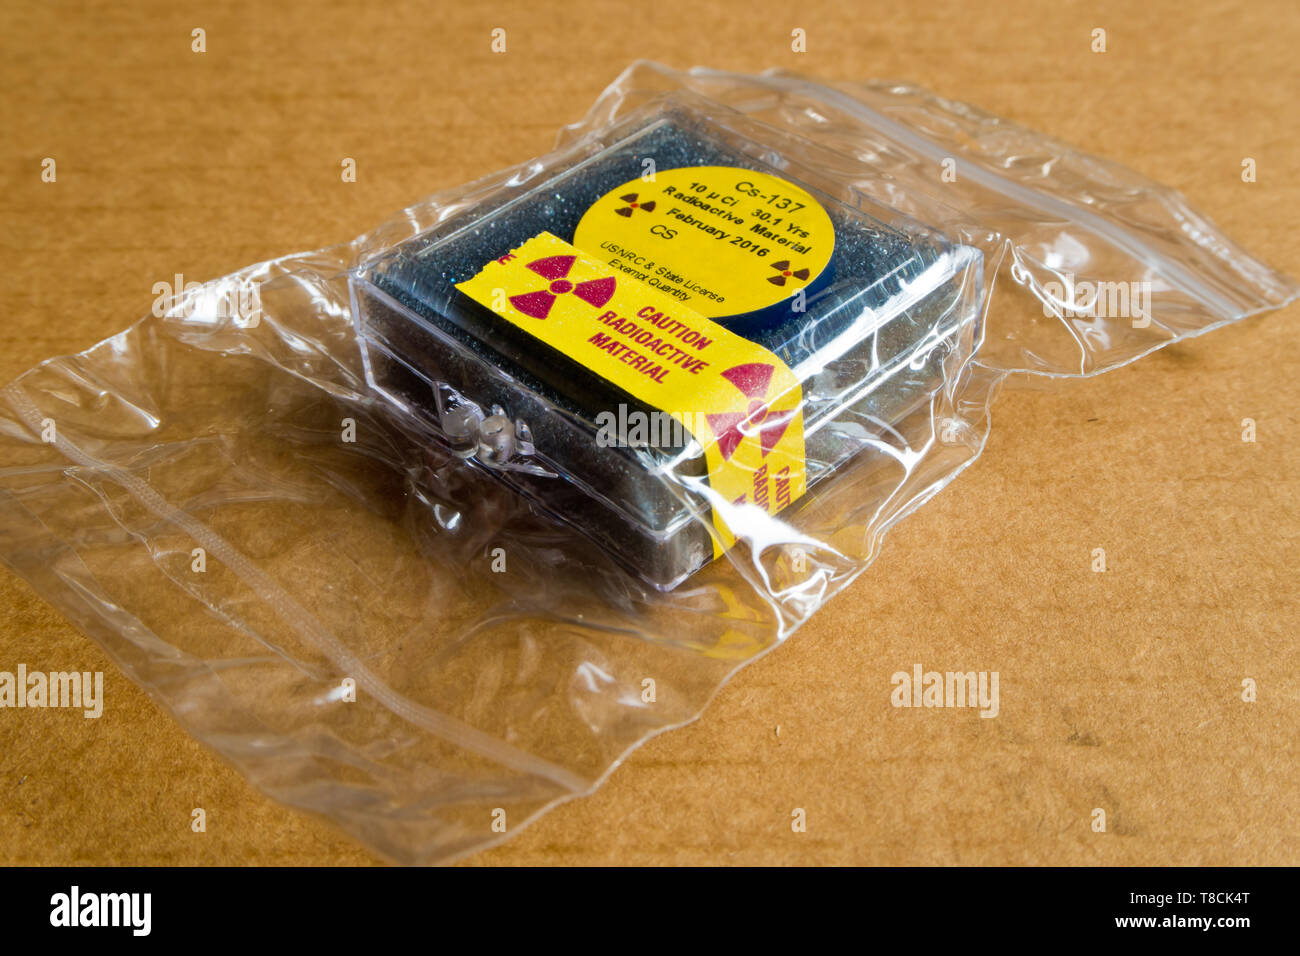 Small Cesium Radioactive in the Plastic package Stock Photo